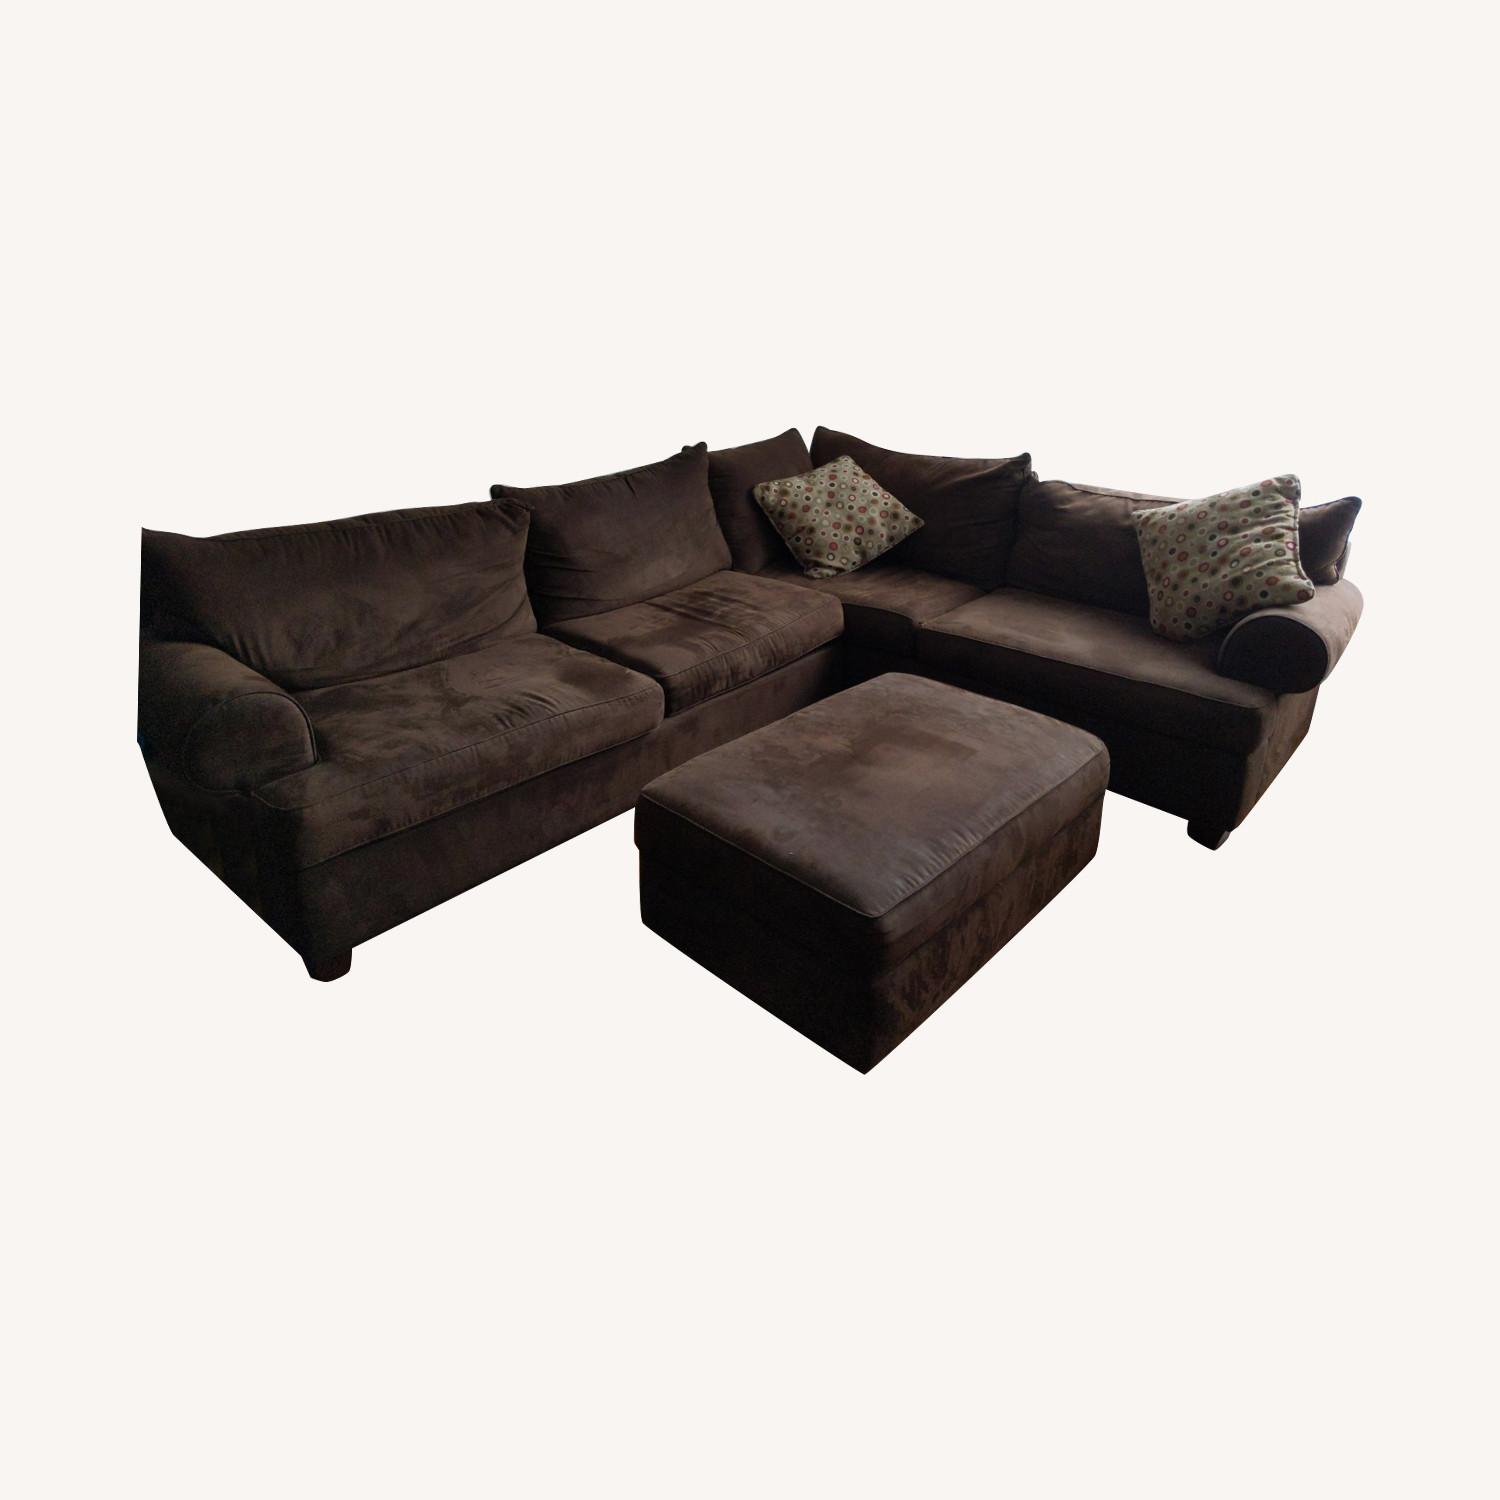 Raymour & Flanigan 2 Piece Sectional - image-0